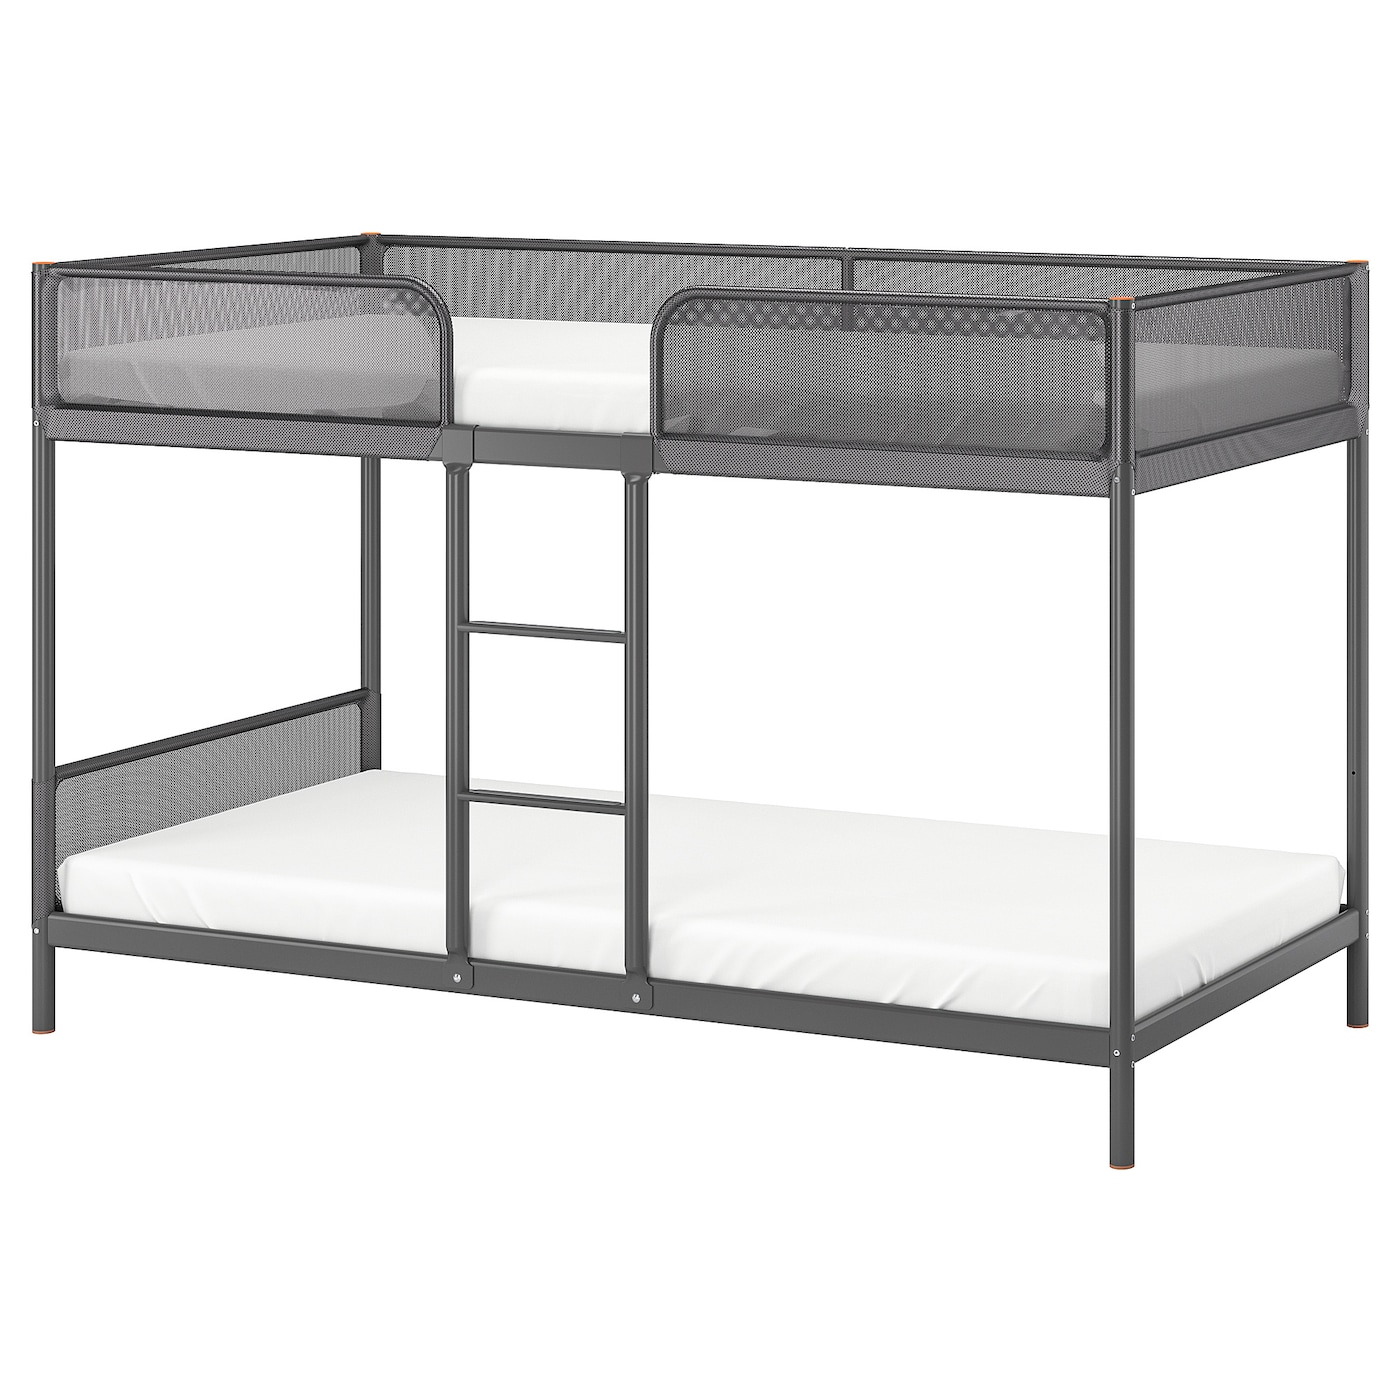 IKEA TUFFING bunk bed frame A good solution where space is limited.